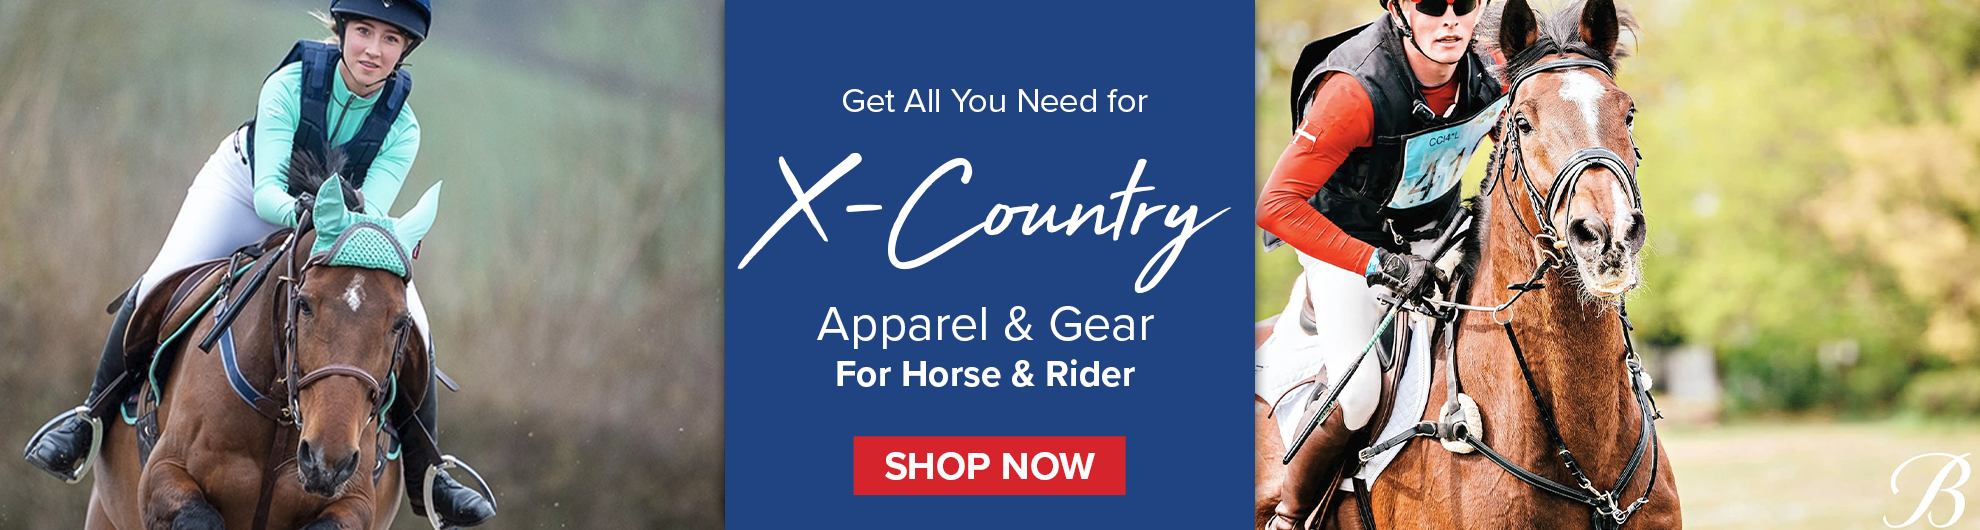 Cross Country Apparel and Gear for Horse and Rider